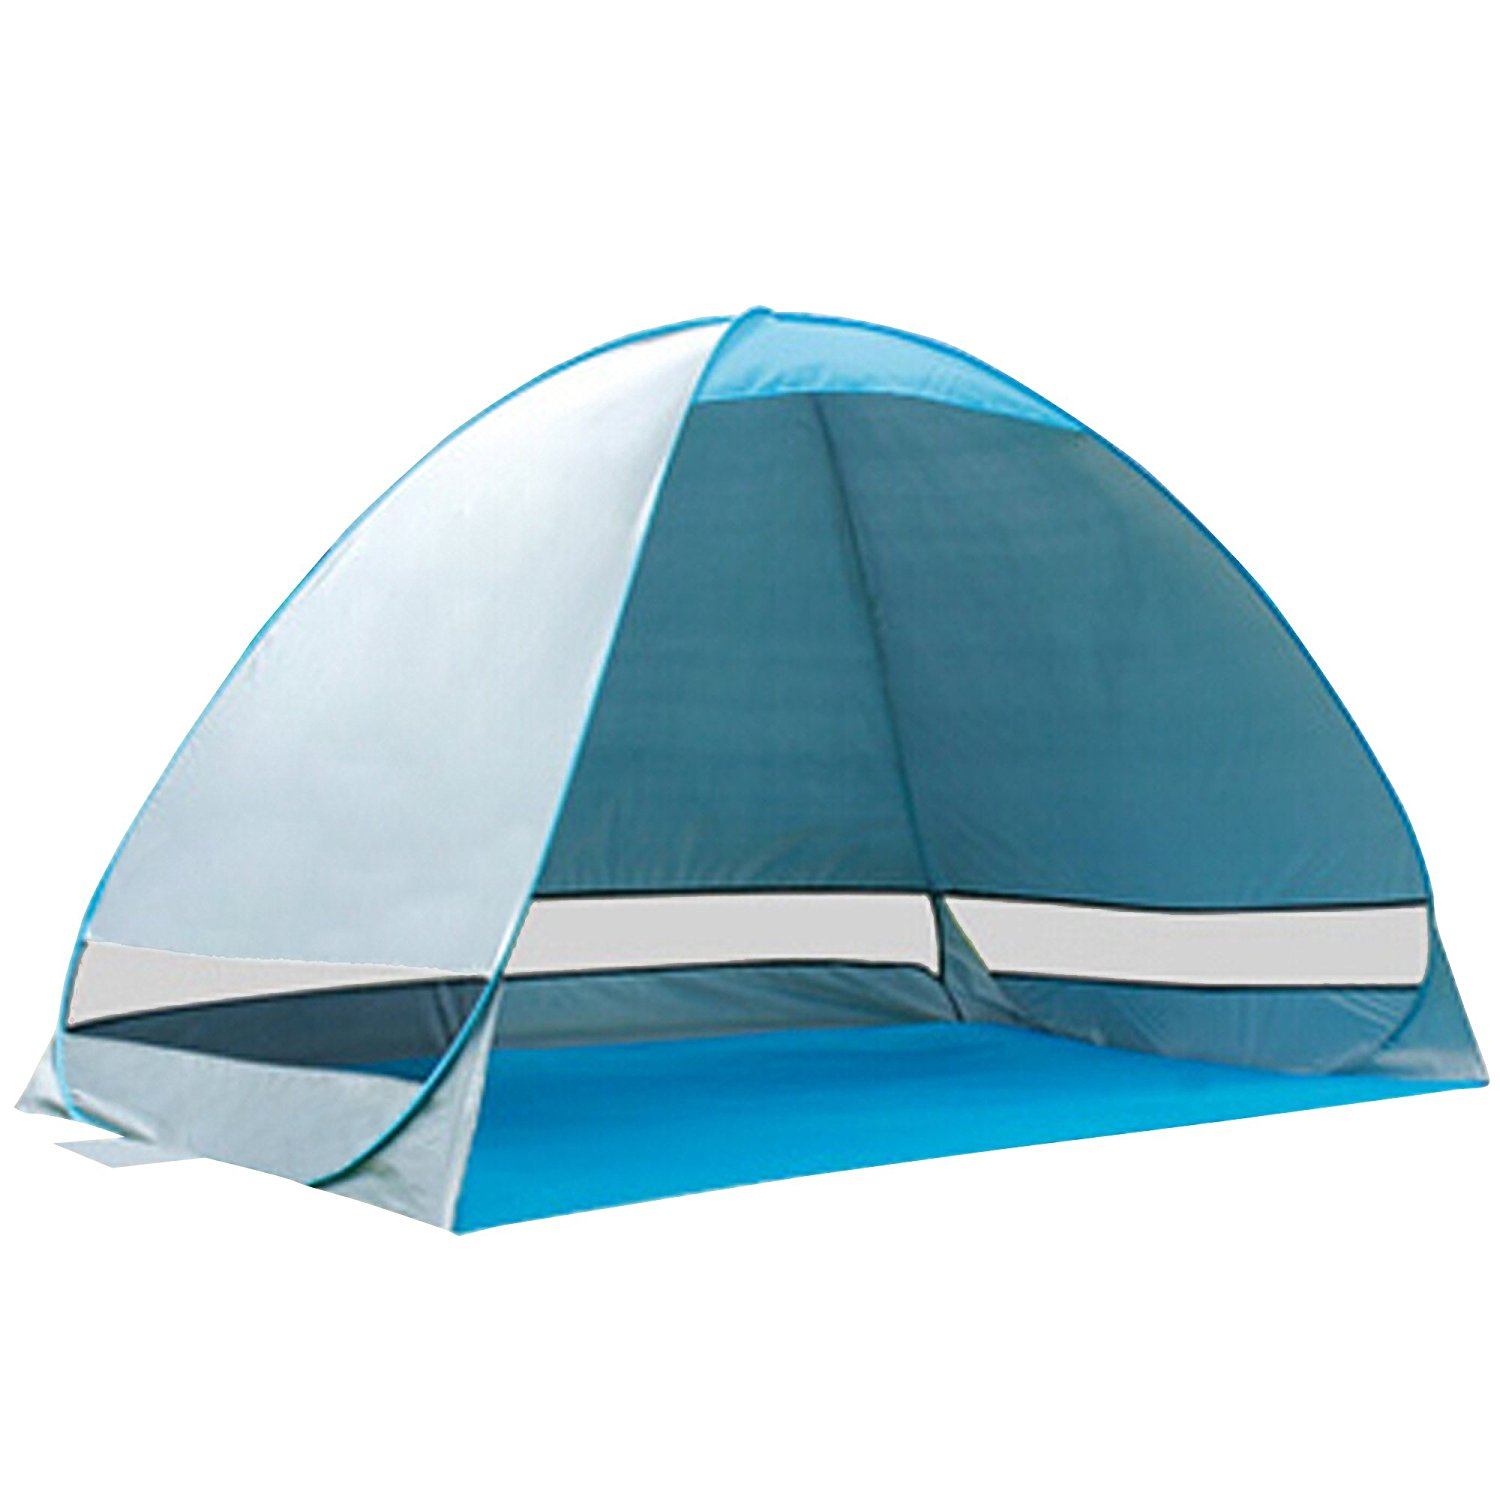 Delicieux Instant Pop Up Portable Beach Tent Canopy UV Sun Shade Shelter Outdoor  Camping Fishing Cabana Mesh